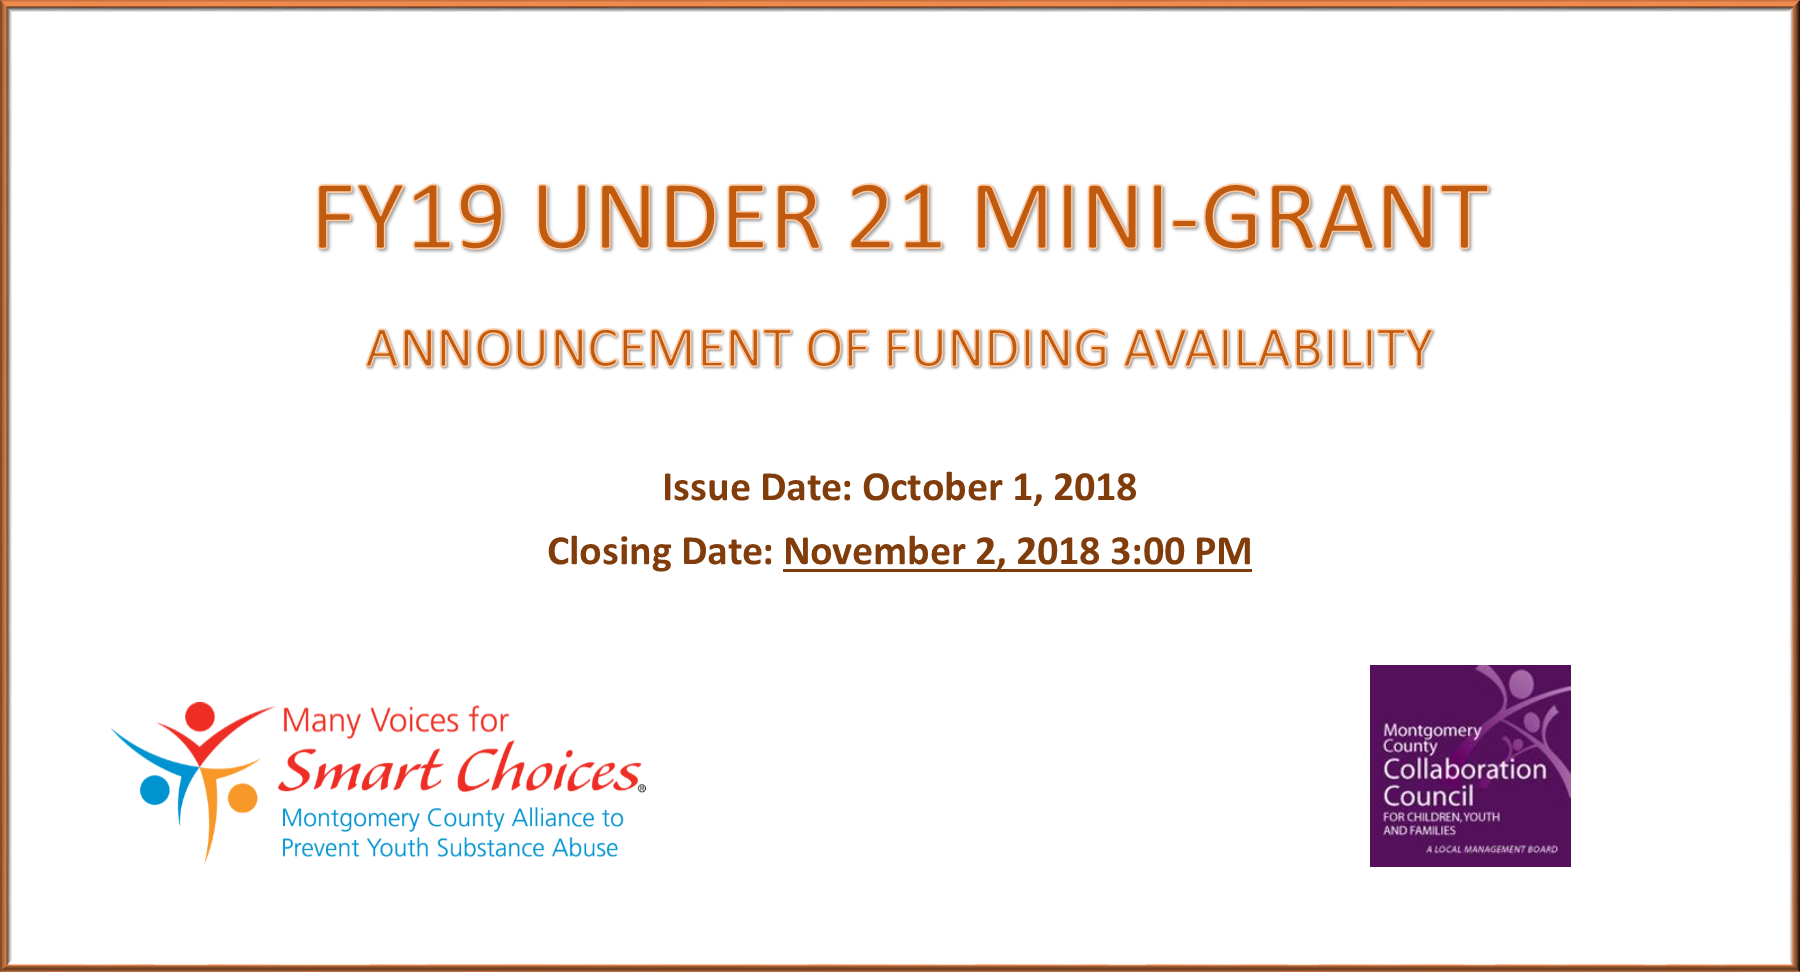 FY19 Under 21 Mini-Grant Funding Available